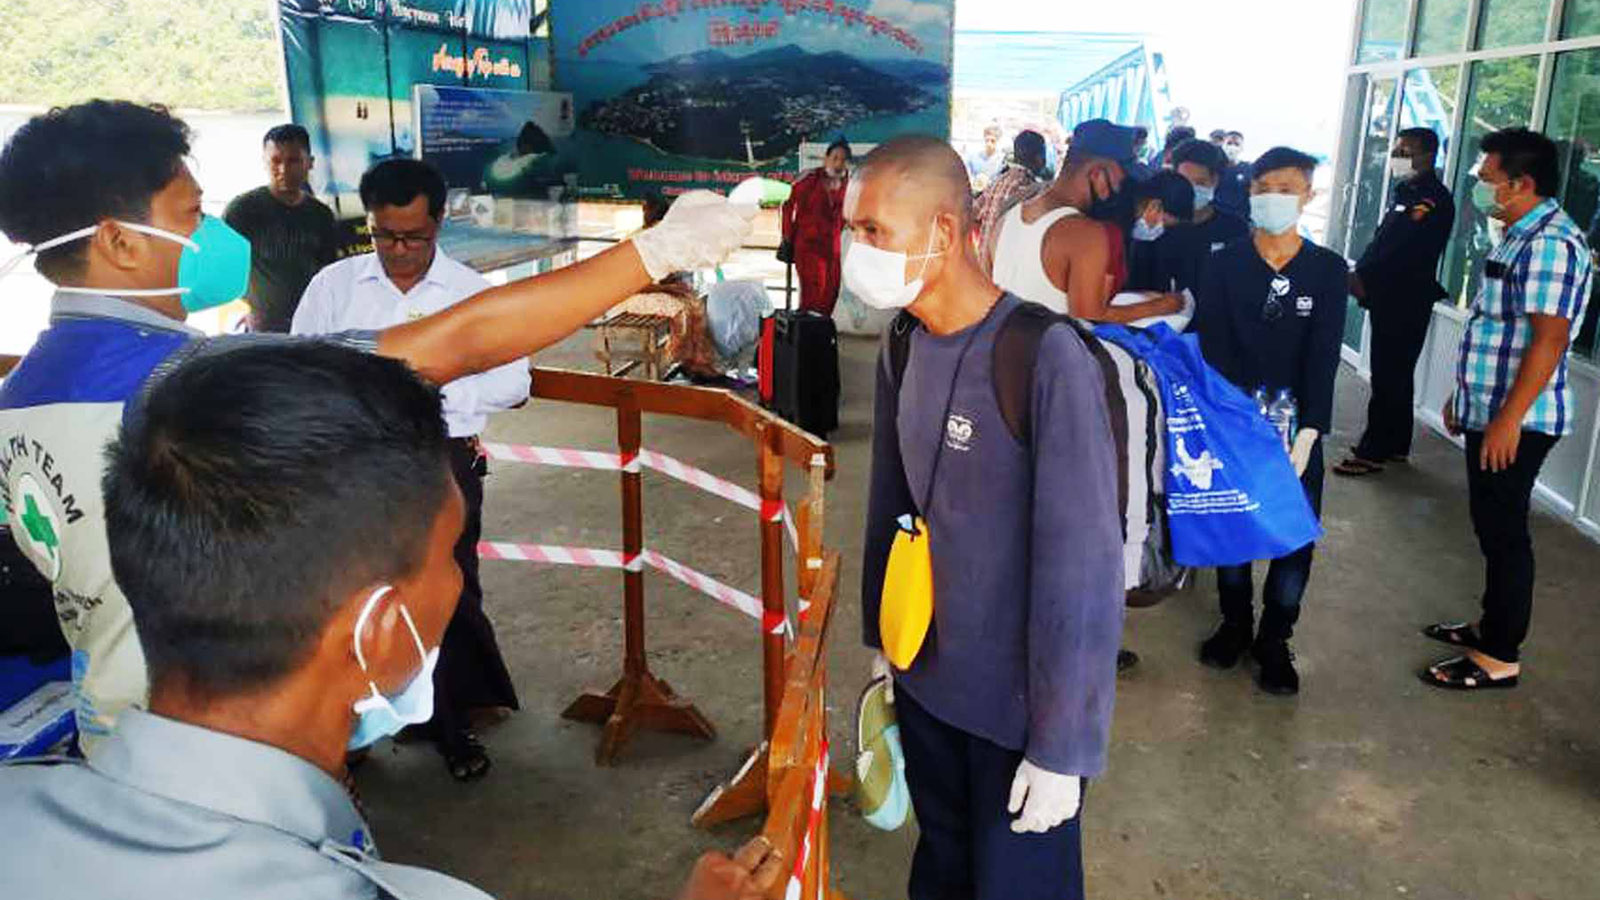 Hotel staff from islands in Andaman Sea receive health checks as they return Kawthoung